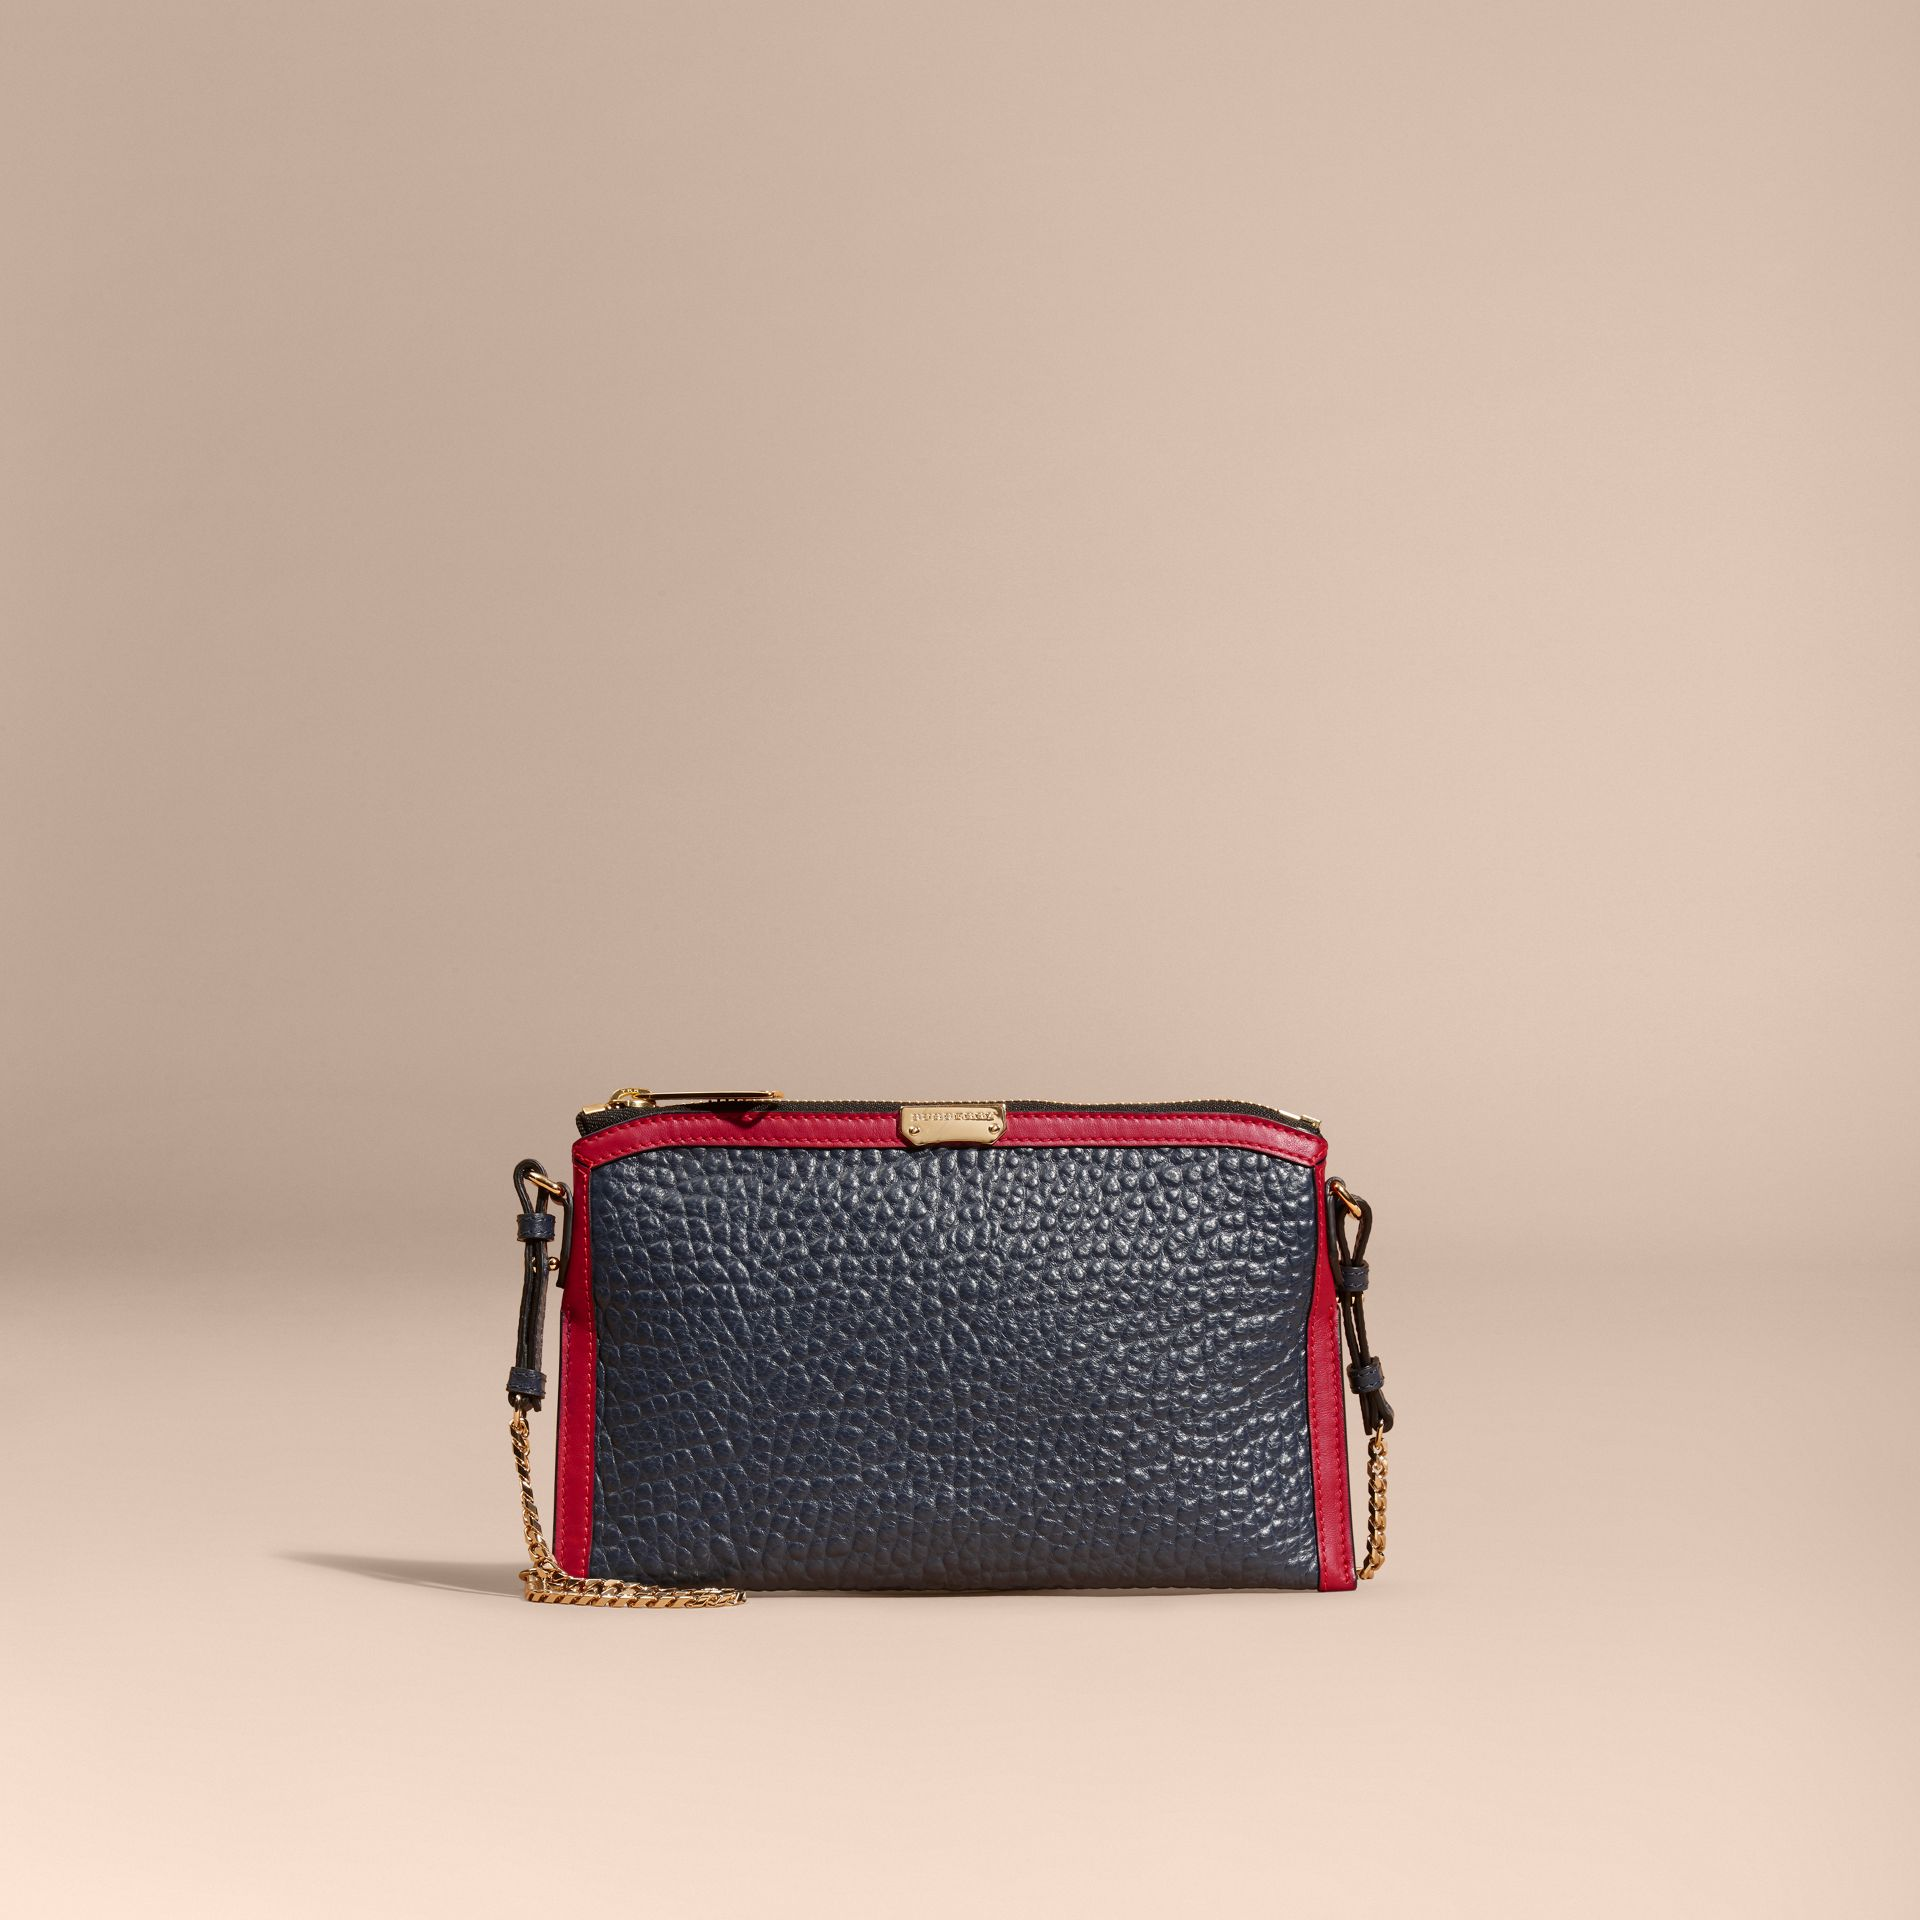 Blue crbn/parade red Contrast Border Signature Grain Leather Clutch Bag - gallery image 9